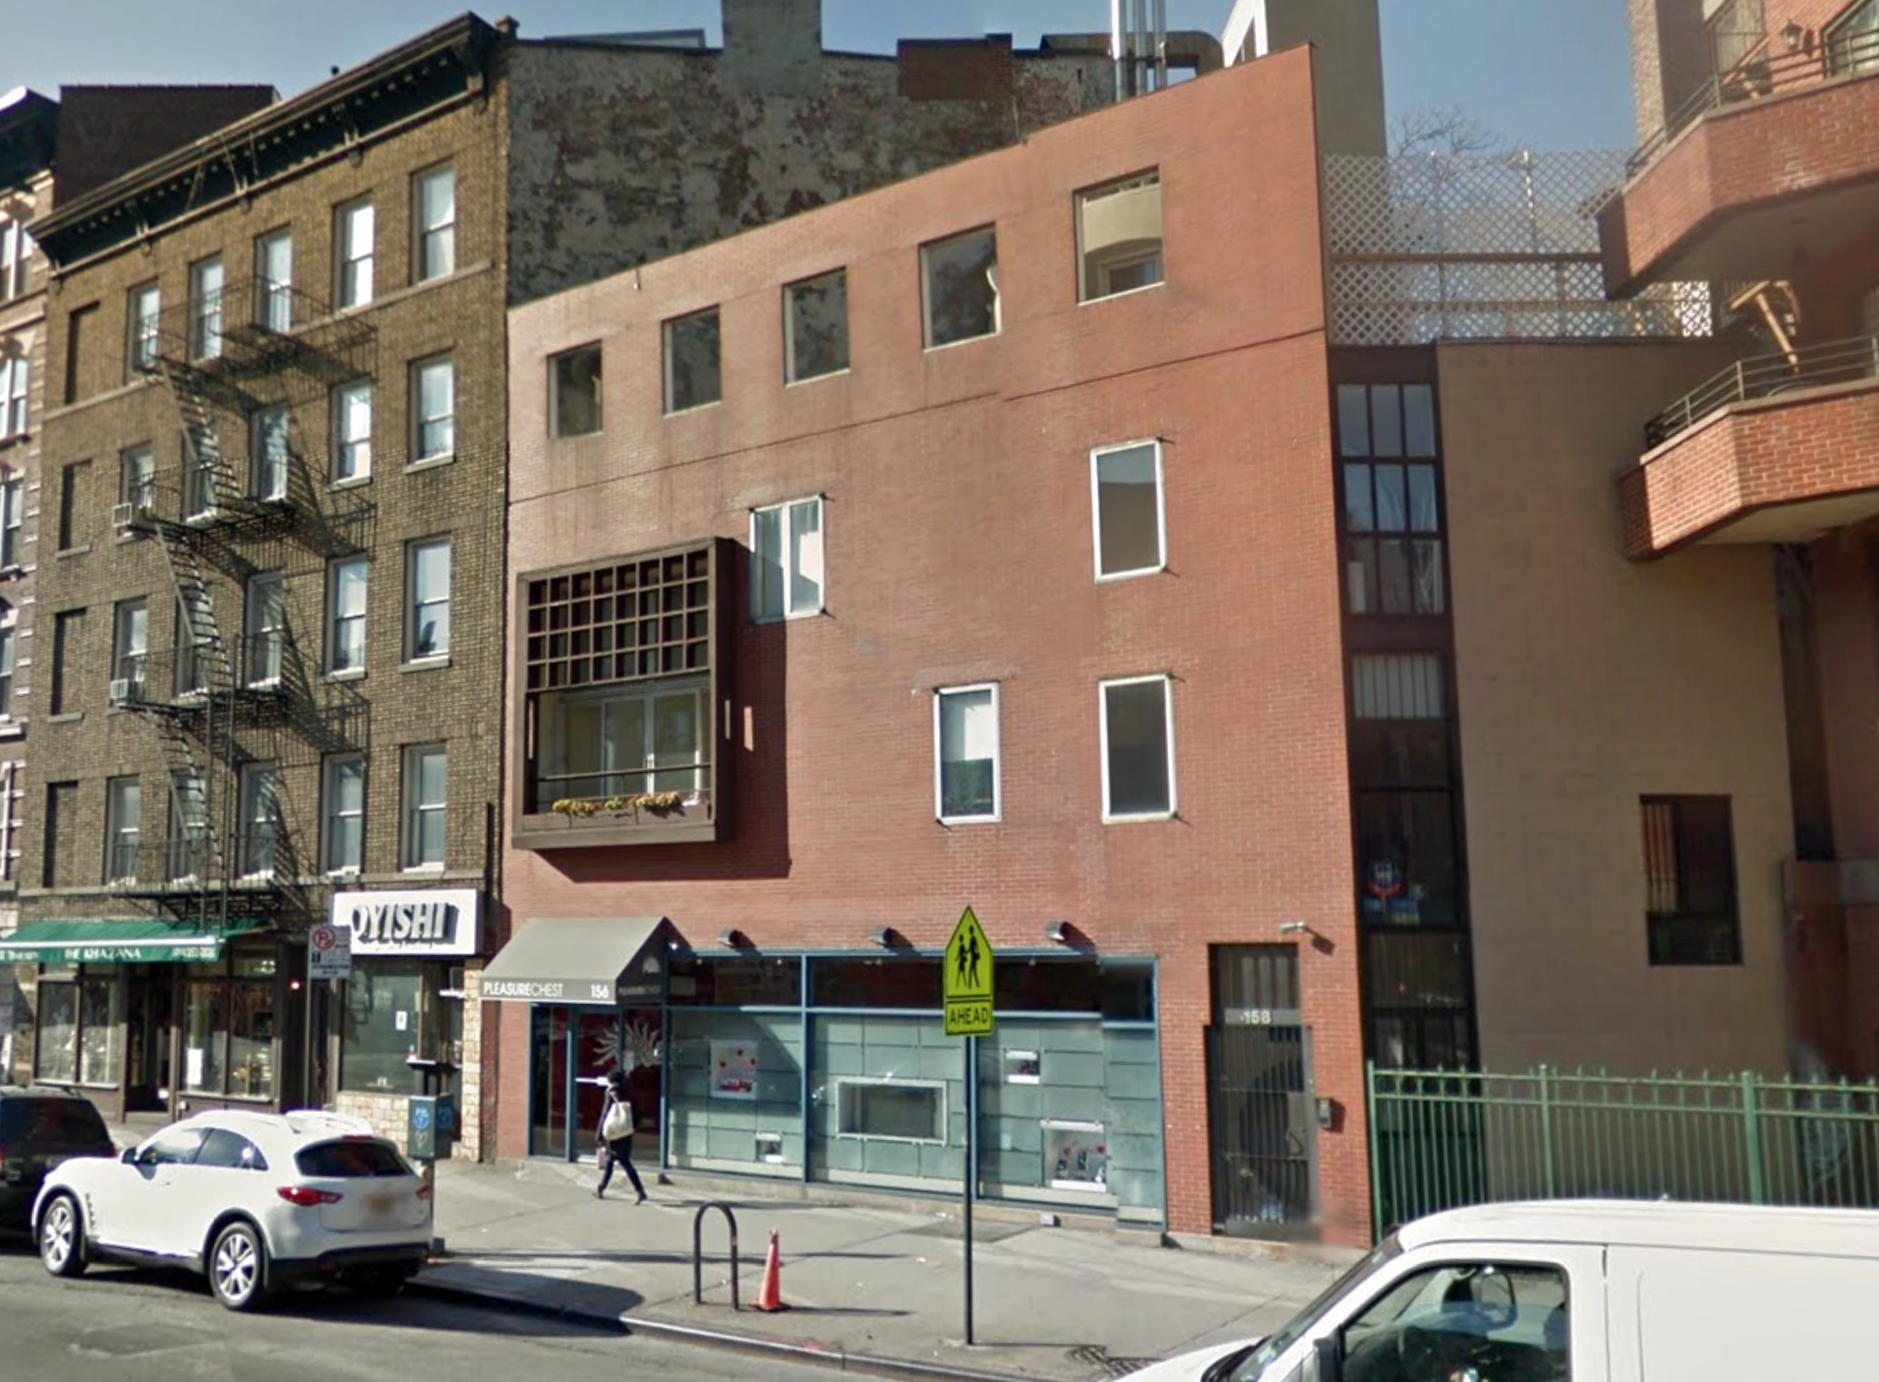 156 Seventh Avenue South in January of 2013. Via Google Maps.